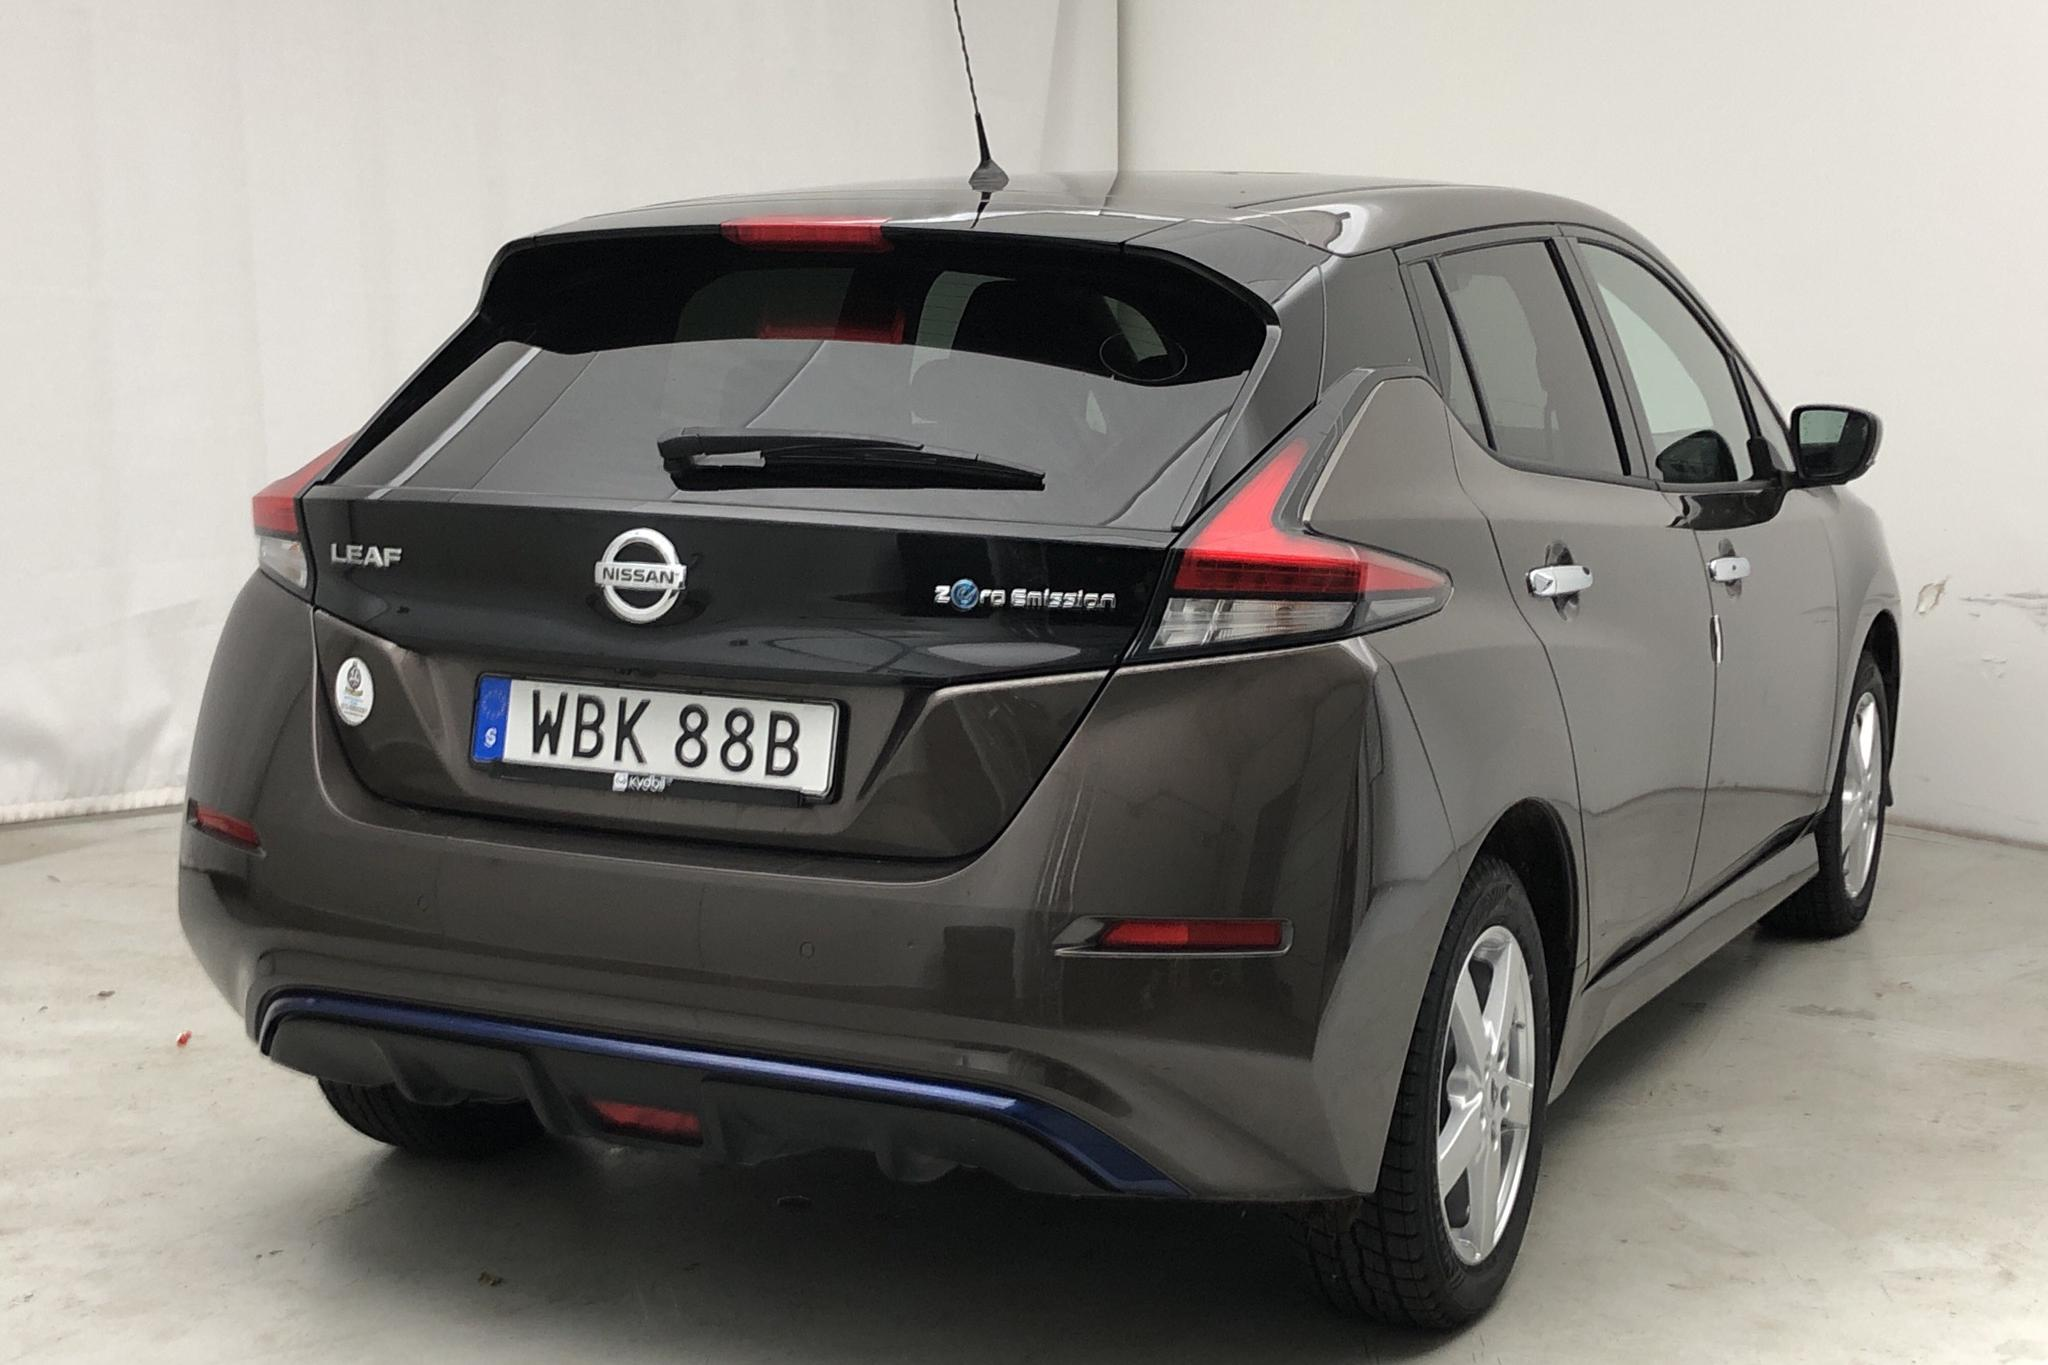 Nissan LEAF 5dr 62 kWh (214hk) - 48 380 km - Automatic - brown - 2020